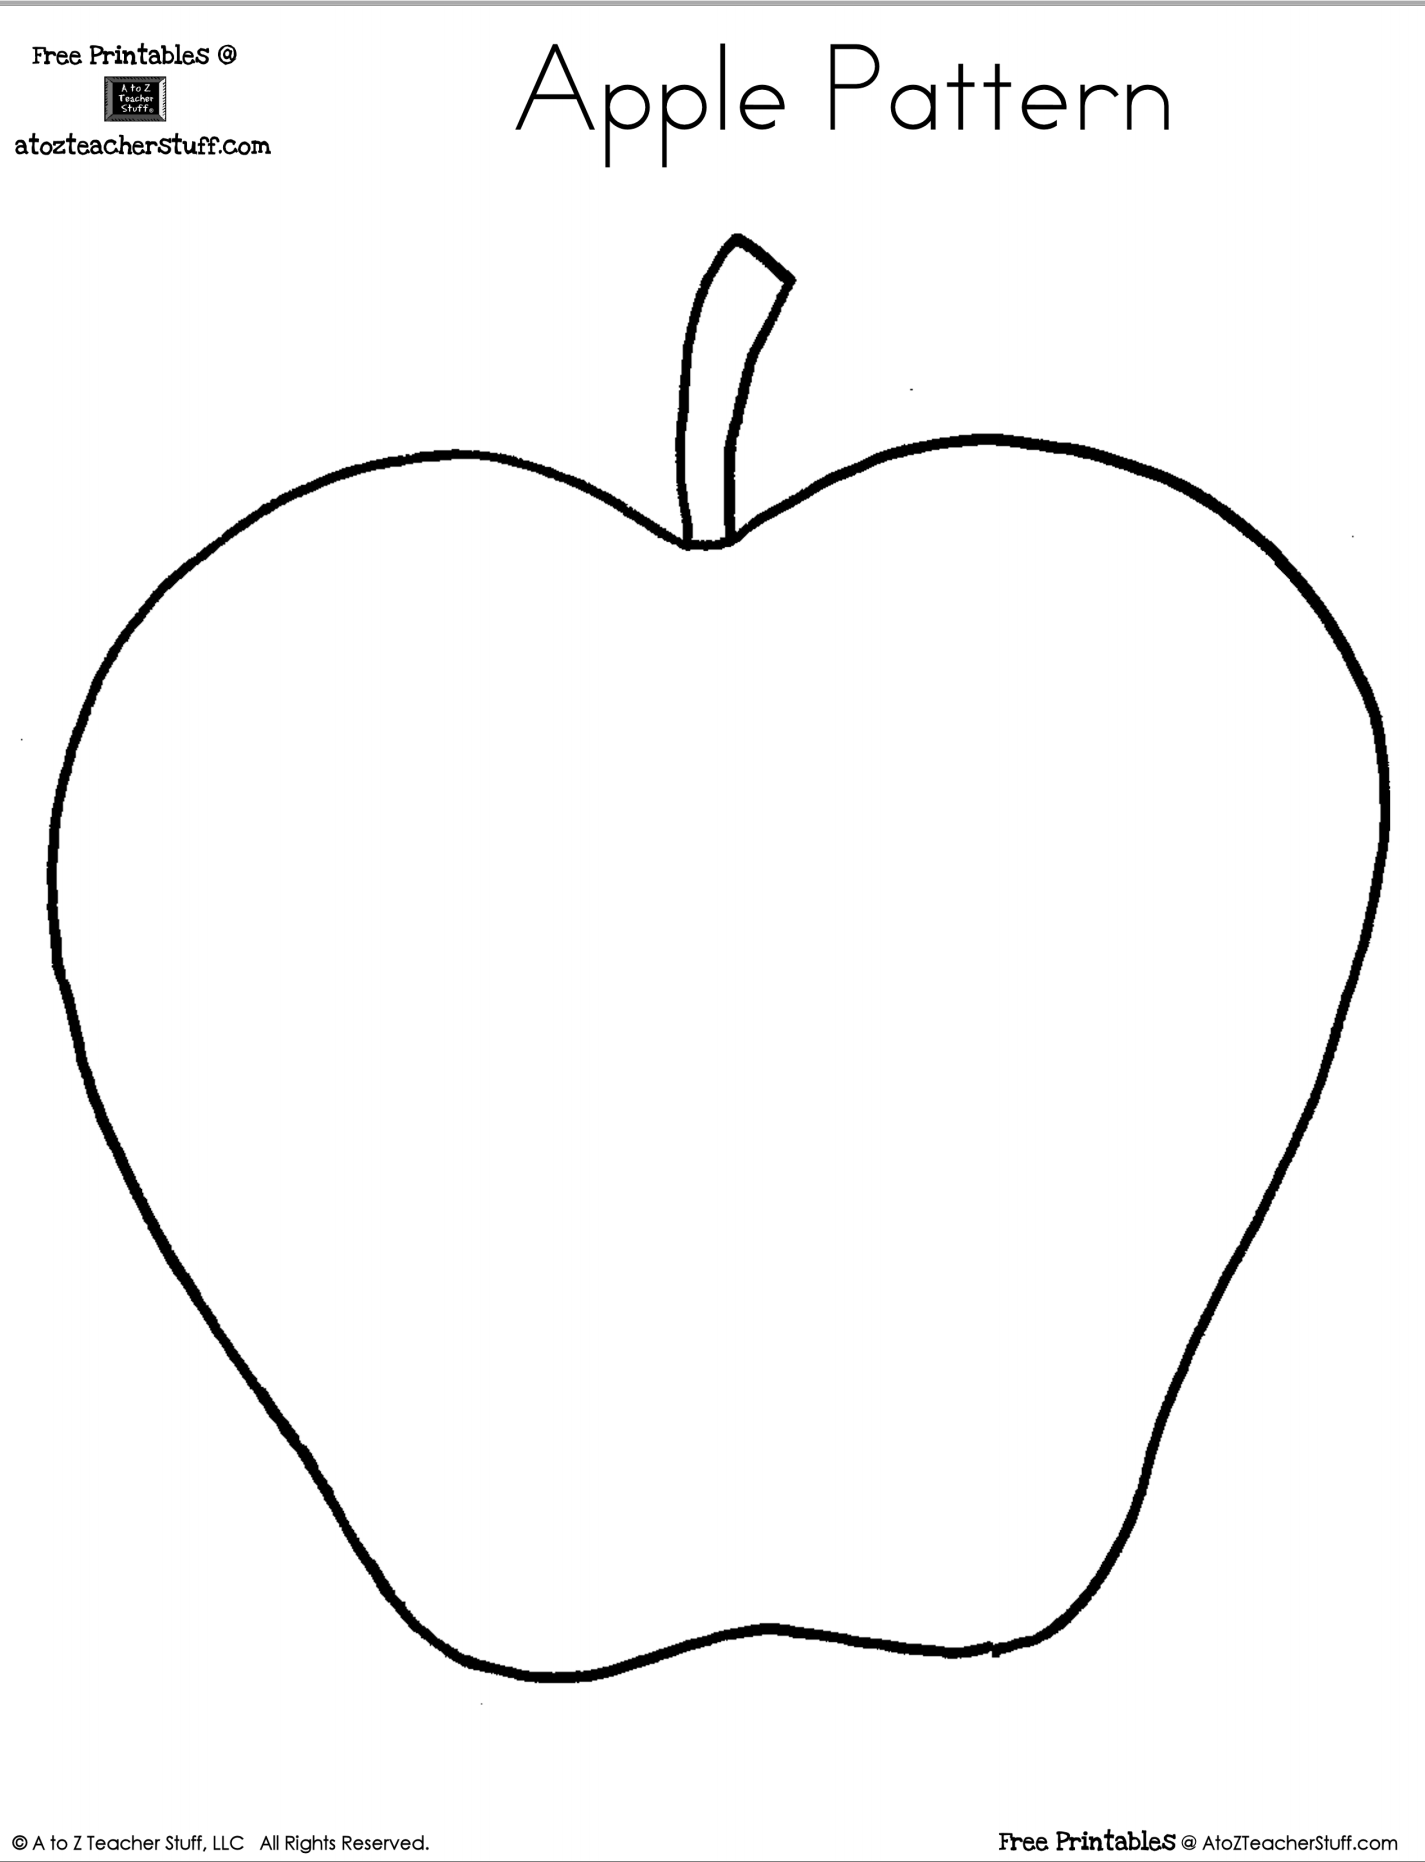 Apple Coloring Pages For Kindergarten Inspirational Flying Horse Coloring Pages Highendpape Apple Coloring Pages Free Printable Coloring Pages Coloring Pages